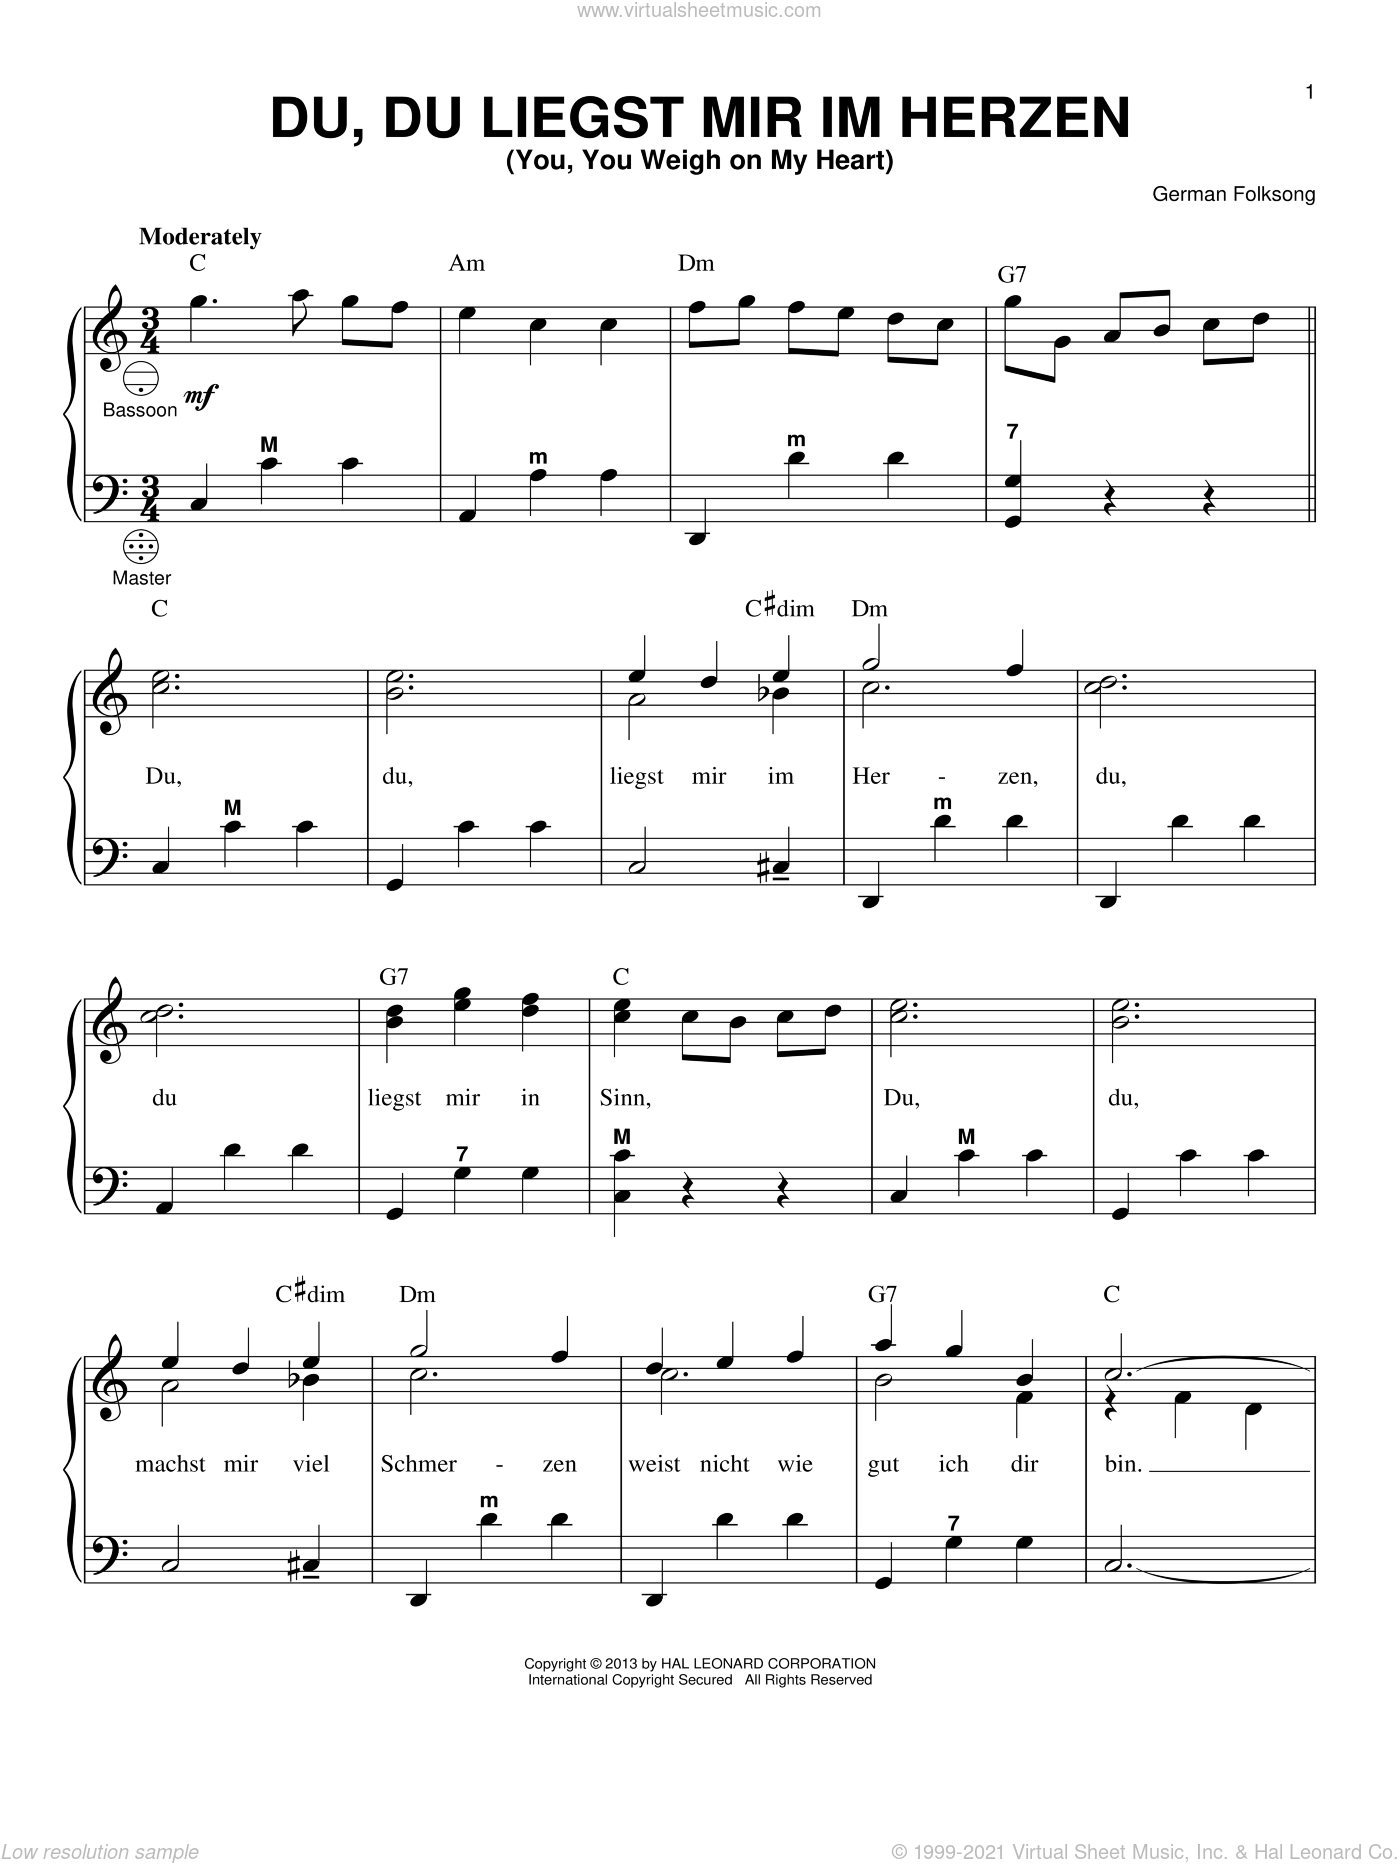 Du, Du Liegst Mir Im Herzen (You, You Weigh On My Heart) sheet music for accordion by Gary Meisner and Miscellaneous, intermediate skill level